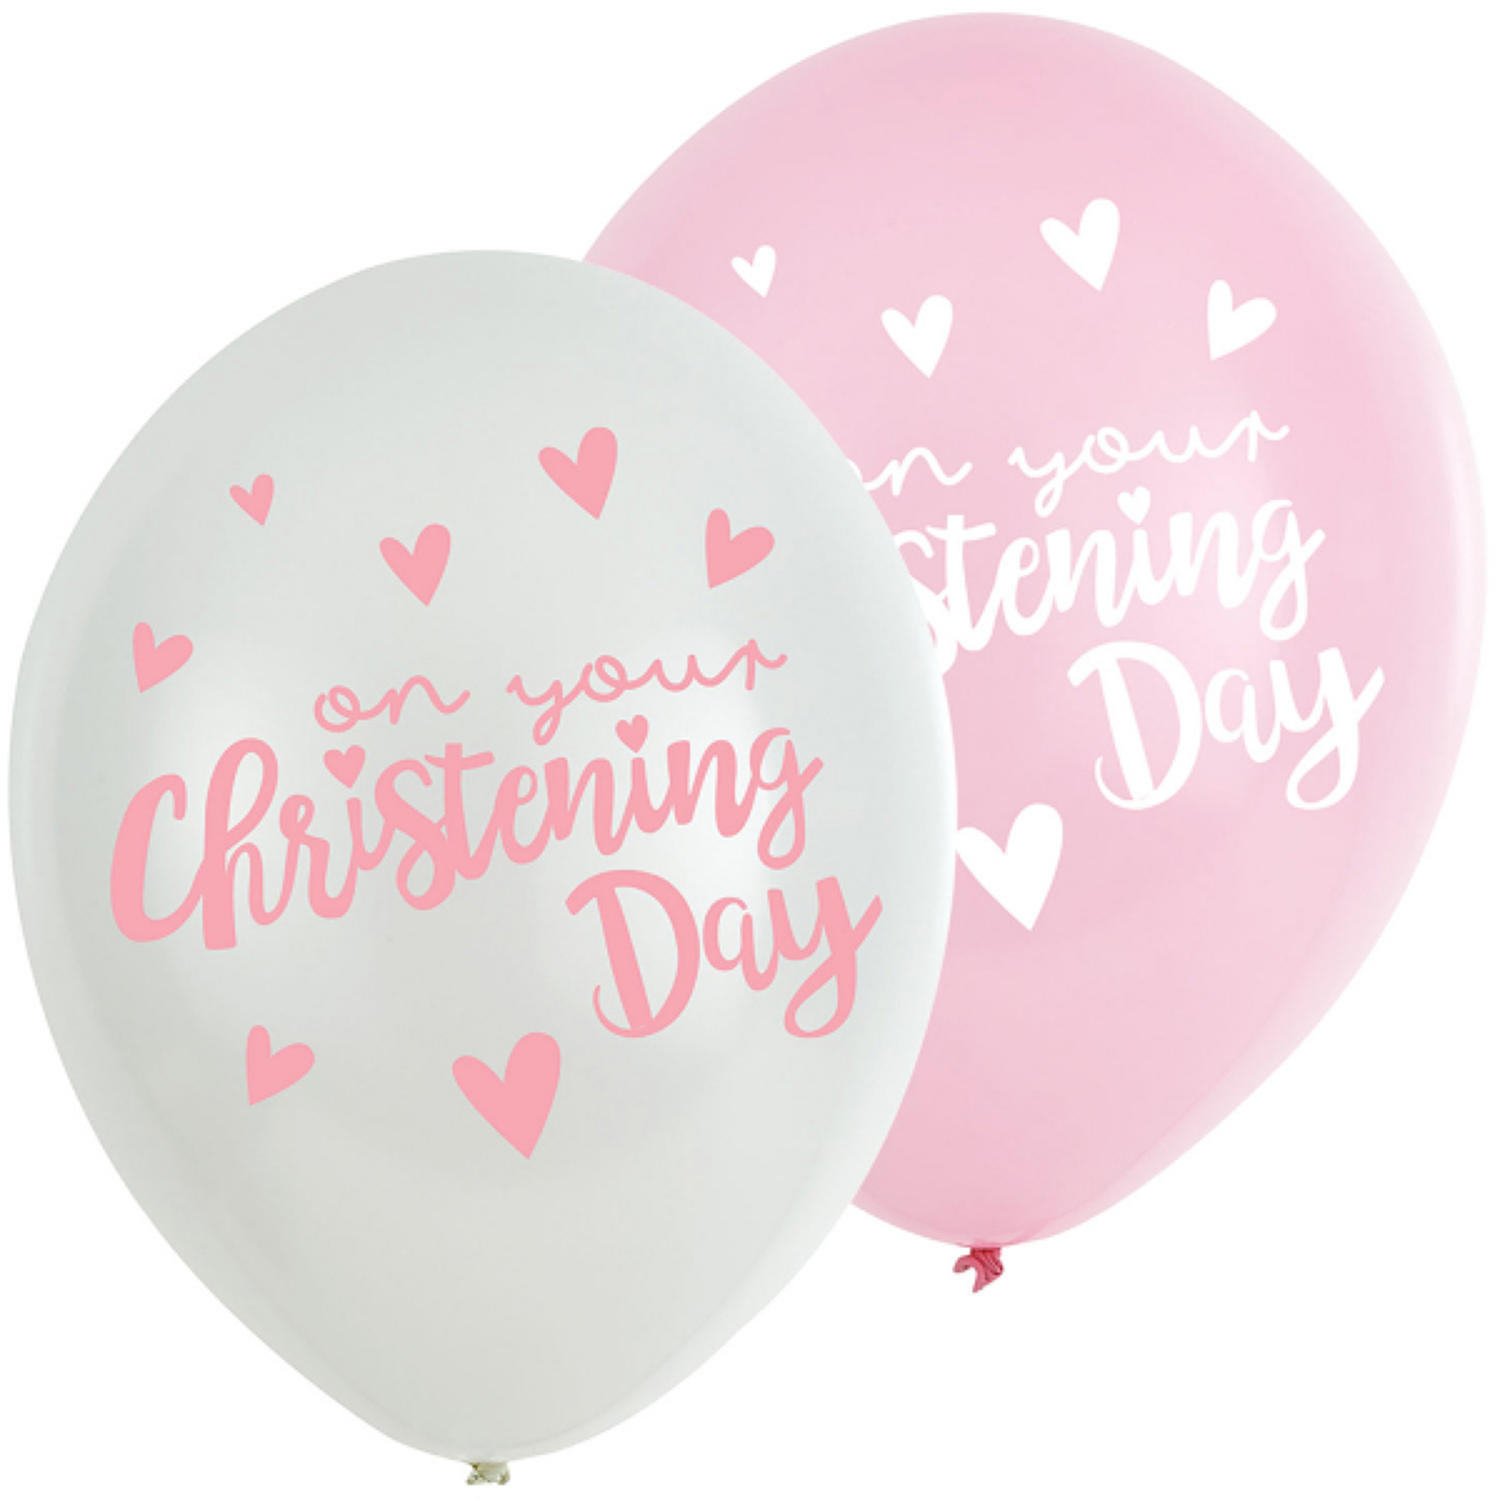 Christening Day Pink Latex Balloons